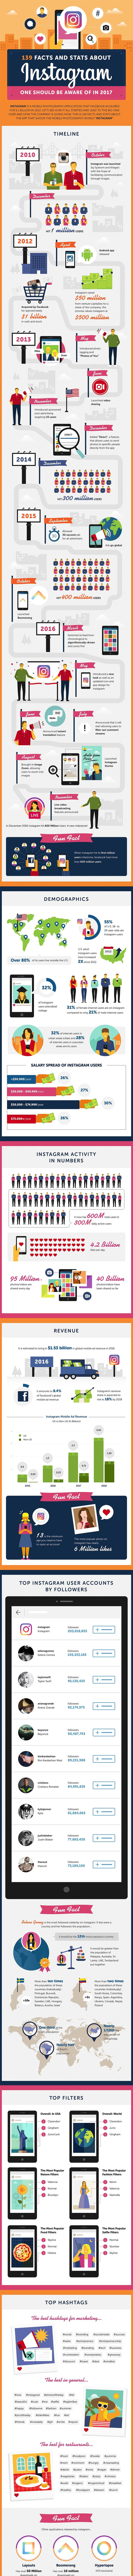 2017 06 fashionplaytes design studio - 139 Facts About Instagram One Should Be Aware Of In 2017 Infographic